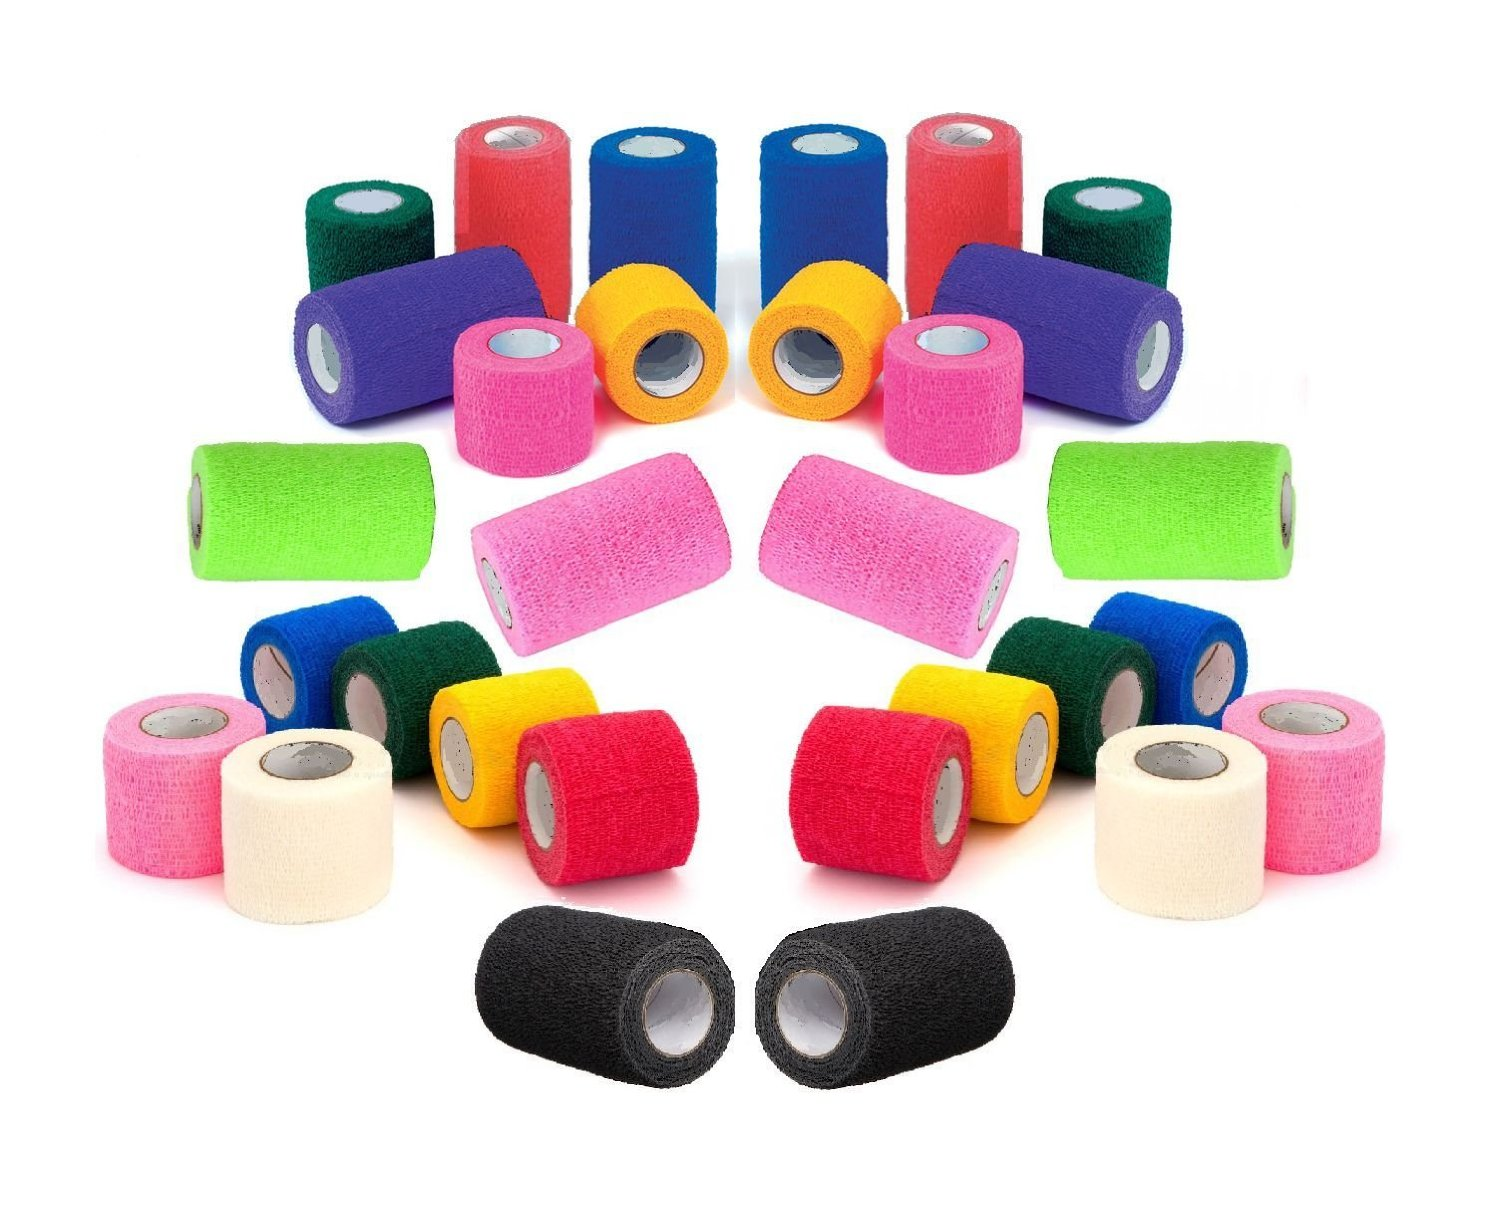 """2"""" Vet Tape Wrap Bulk, Self Adherent Wrap Tape, Self Adhering Stick Bandage, Self Grip Roll - Black, Blue, Brown, Fuchsia, Hunter Green, Neon Green, Neon Pink, Purple, Red, Teal, White, or Assorted Colors (2"""" inches Wide x 15' Feet Long) - (6 Rolls, 12 Rolls, 18 Rolls, or 24 Rolls)"""